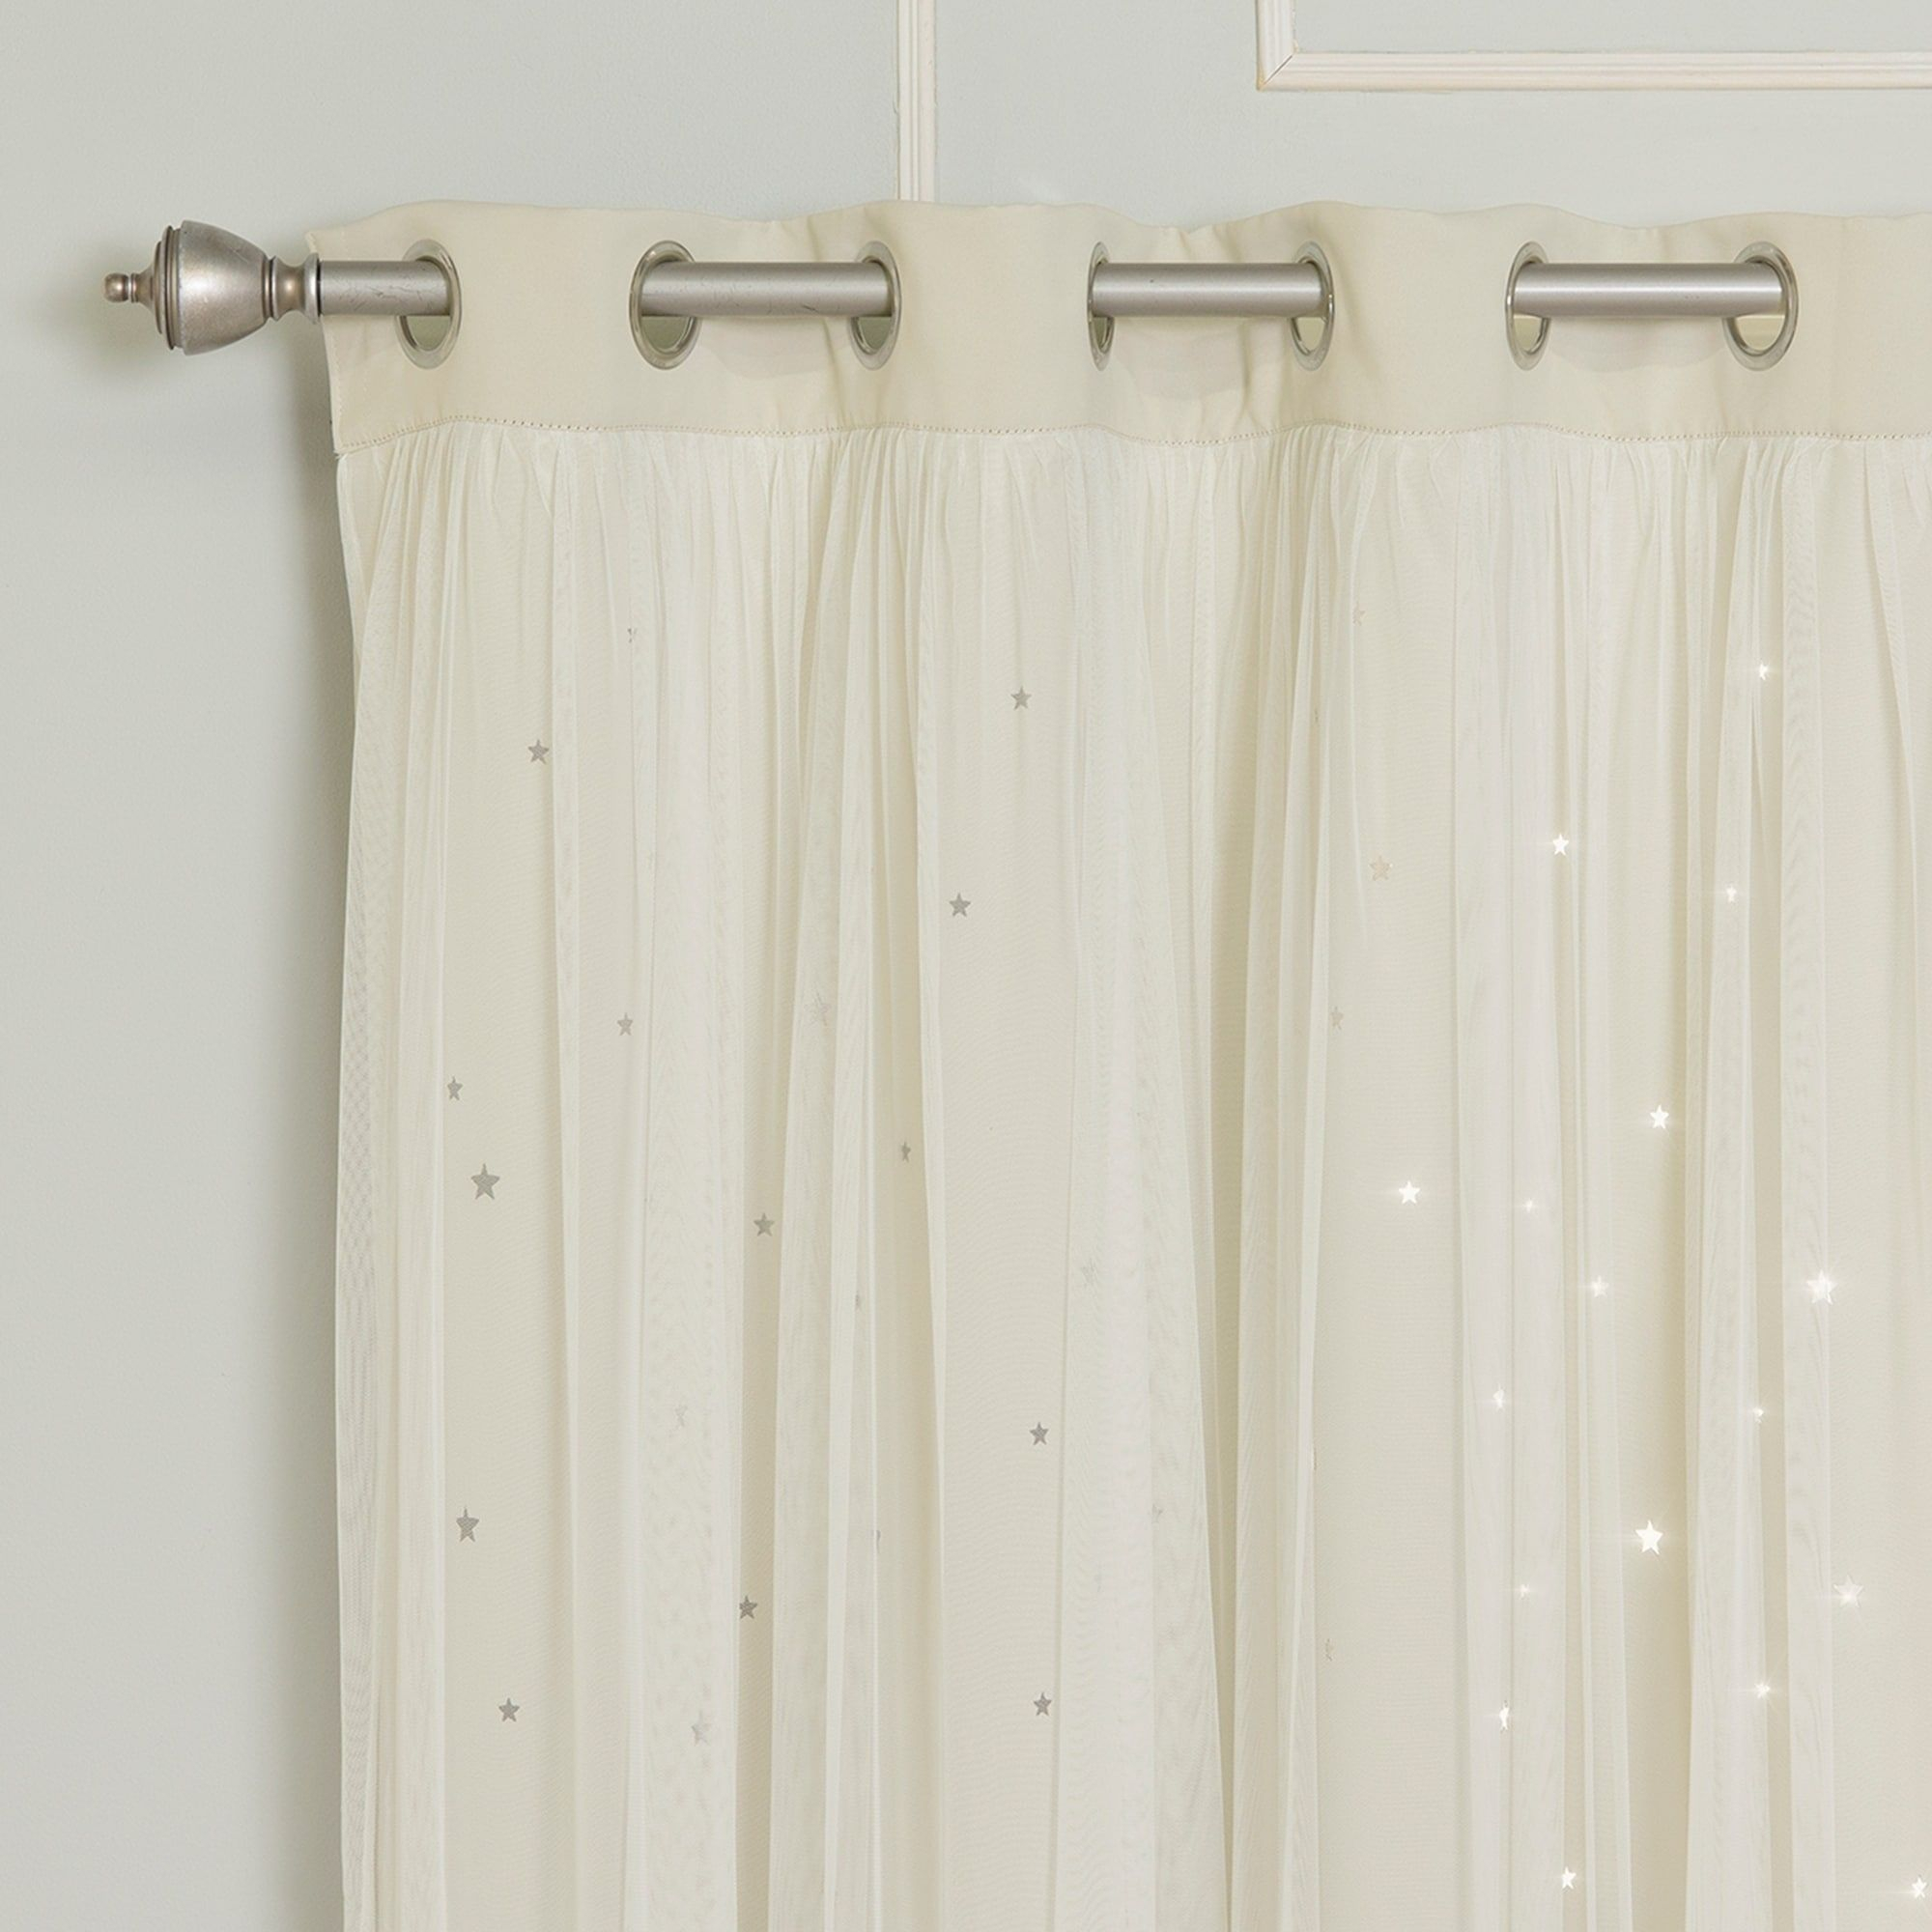 Aurora Home Star Punch Tulle Overlay Blackout Curtains – N/a Intended For Star Punch Tulle Overlay Blackout Curtain Panel Pairs (View 8 of 30)